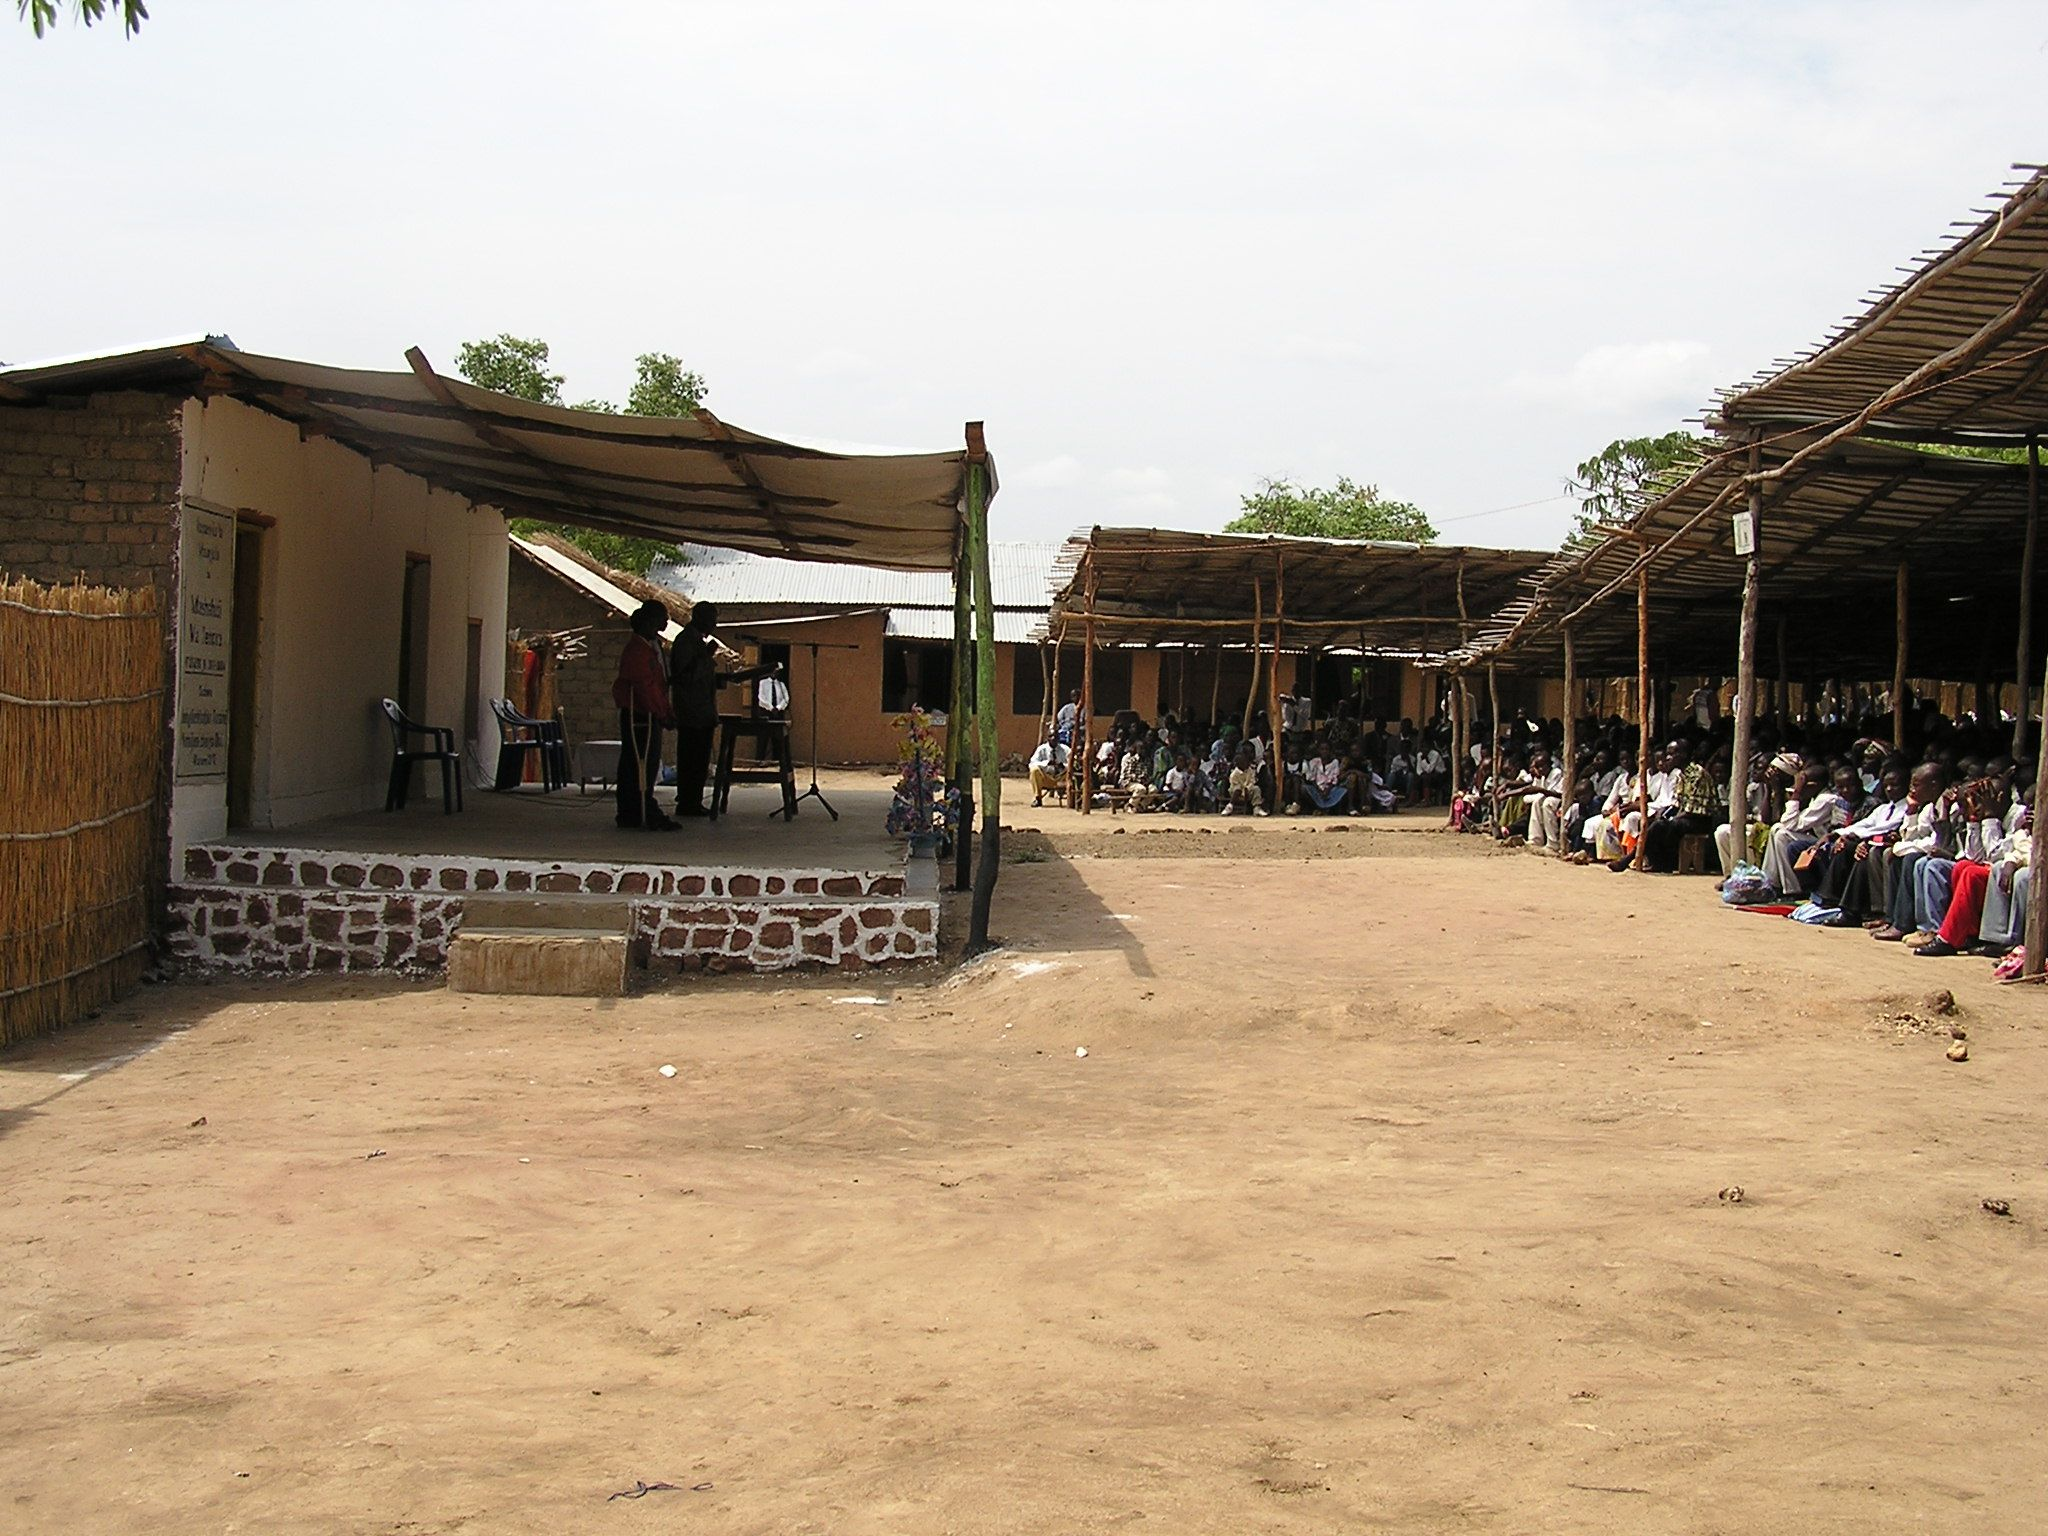 The circuit assembly in the Lugufu Refugee Camp in Tanzania.